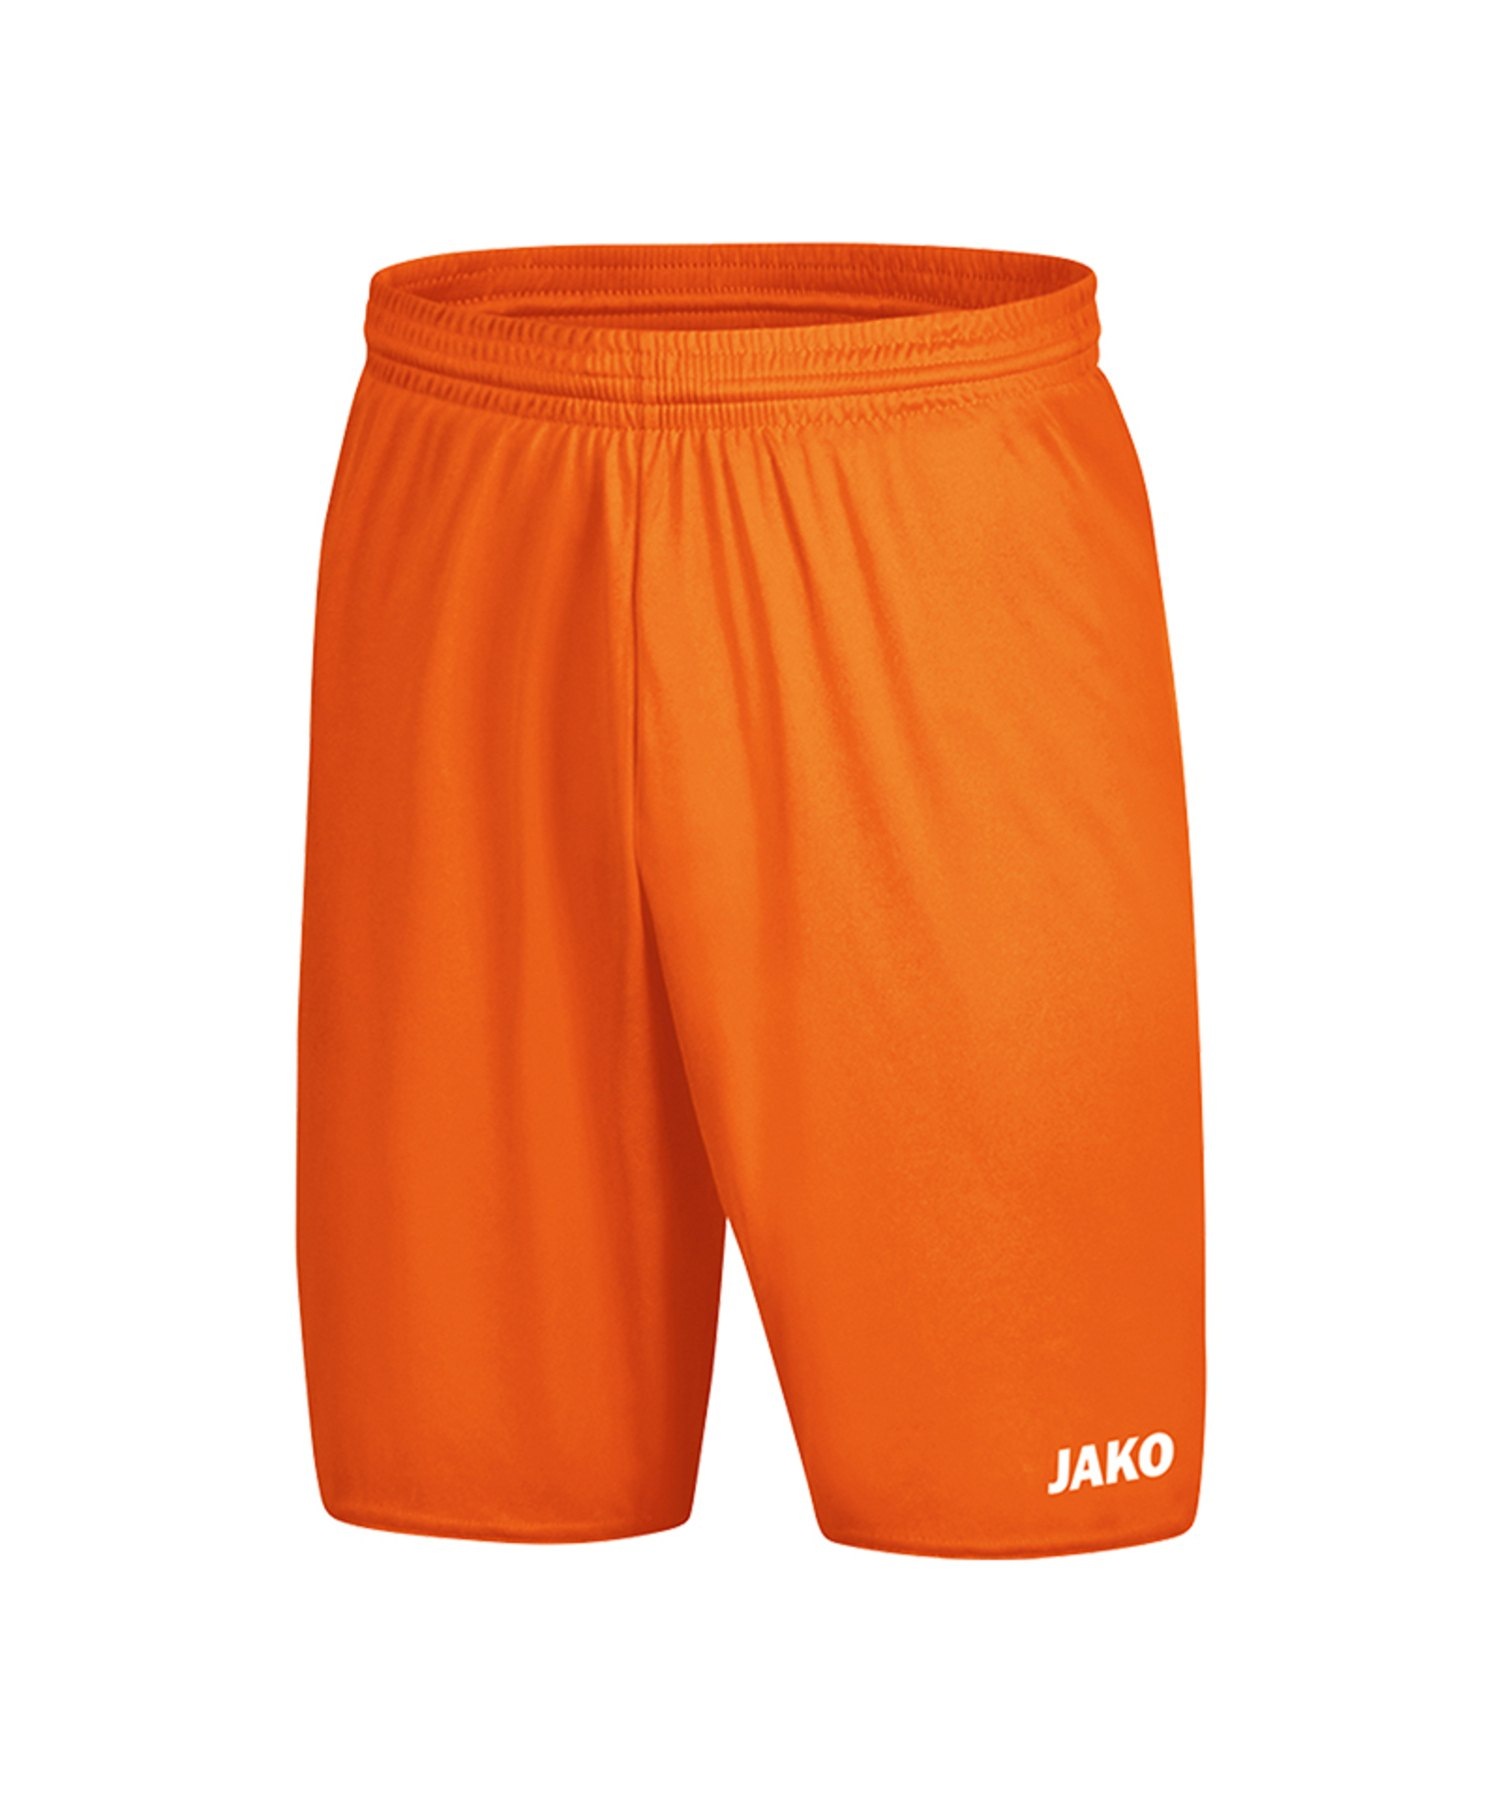 Jako Manchester 2.0 Short ohne Innenslip Kids F19 - Orange